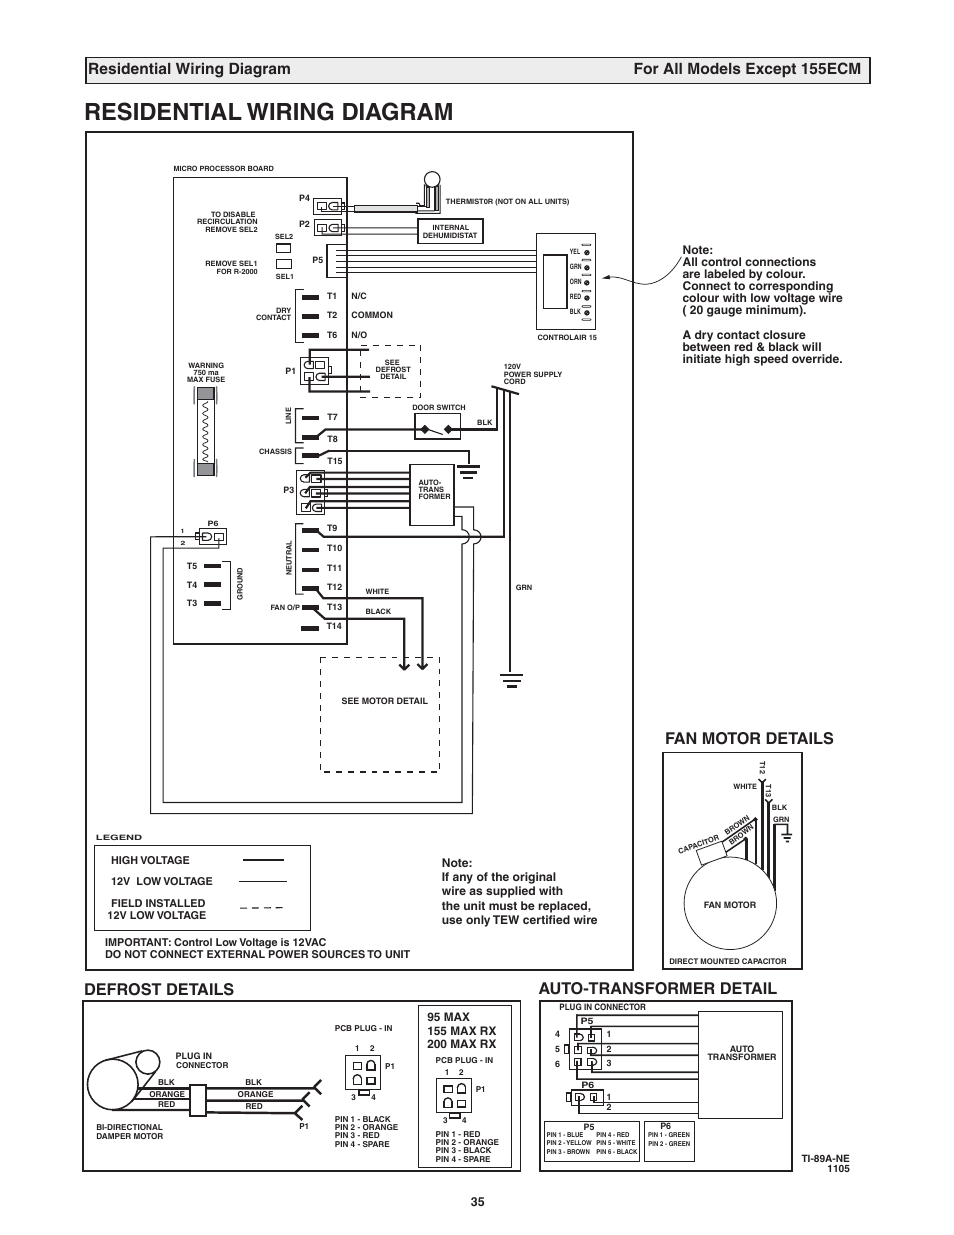 Residential Wiring Test Free Download Wiring Diagrams Pictures